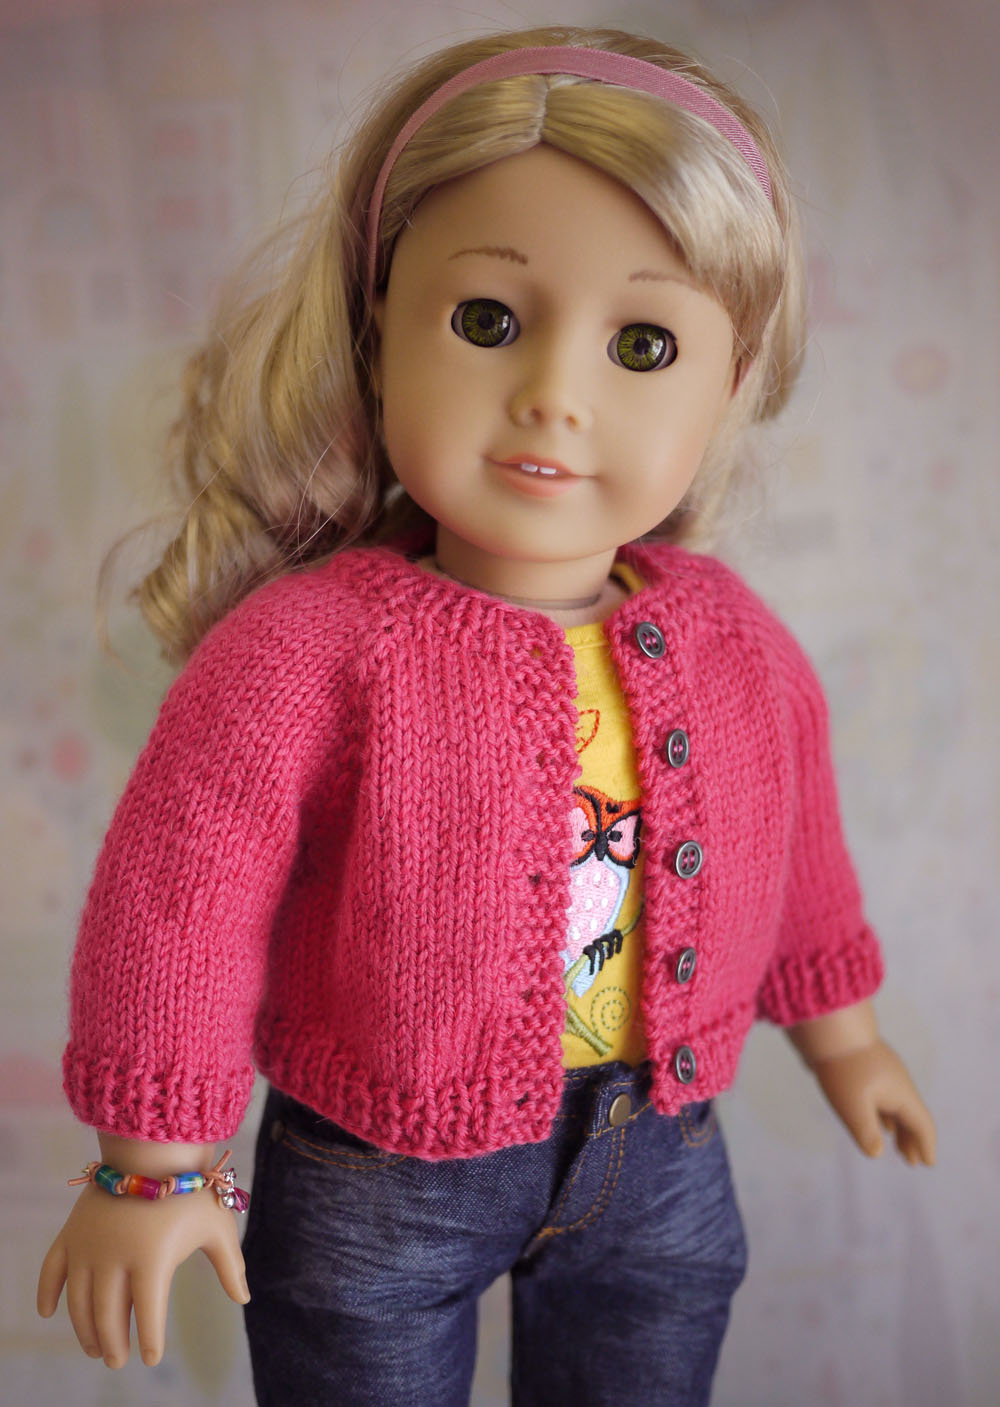 Free Knitting Patterns Girls : free knitting patterns for american girl doll - Music Search Engine at Search...